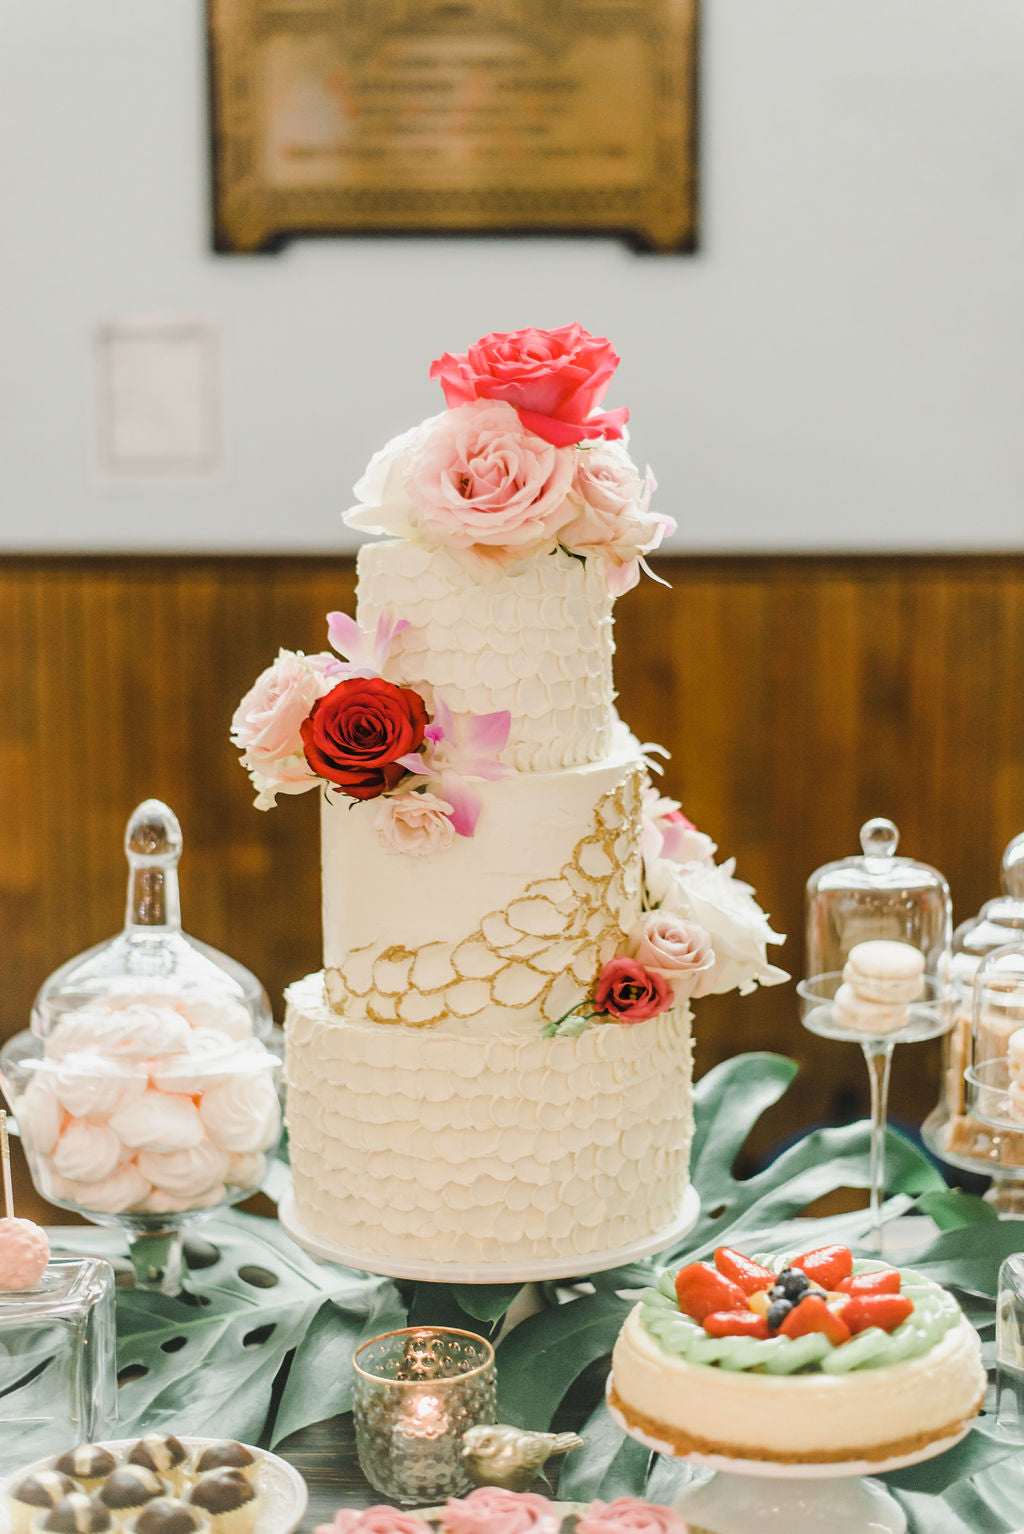 Bougainvillea Tropical Wedding Destination Inspiration All Saints Events Ottawa Wedding Cake Dessert Table Citrus Press Co